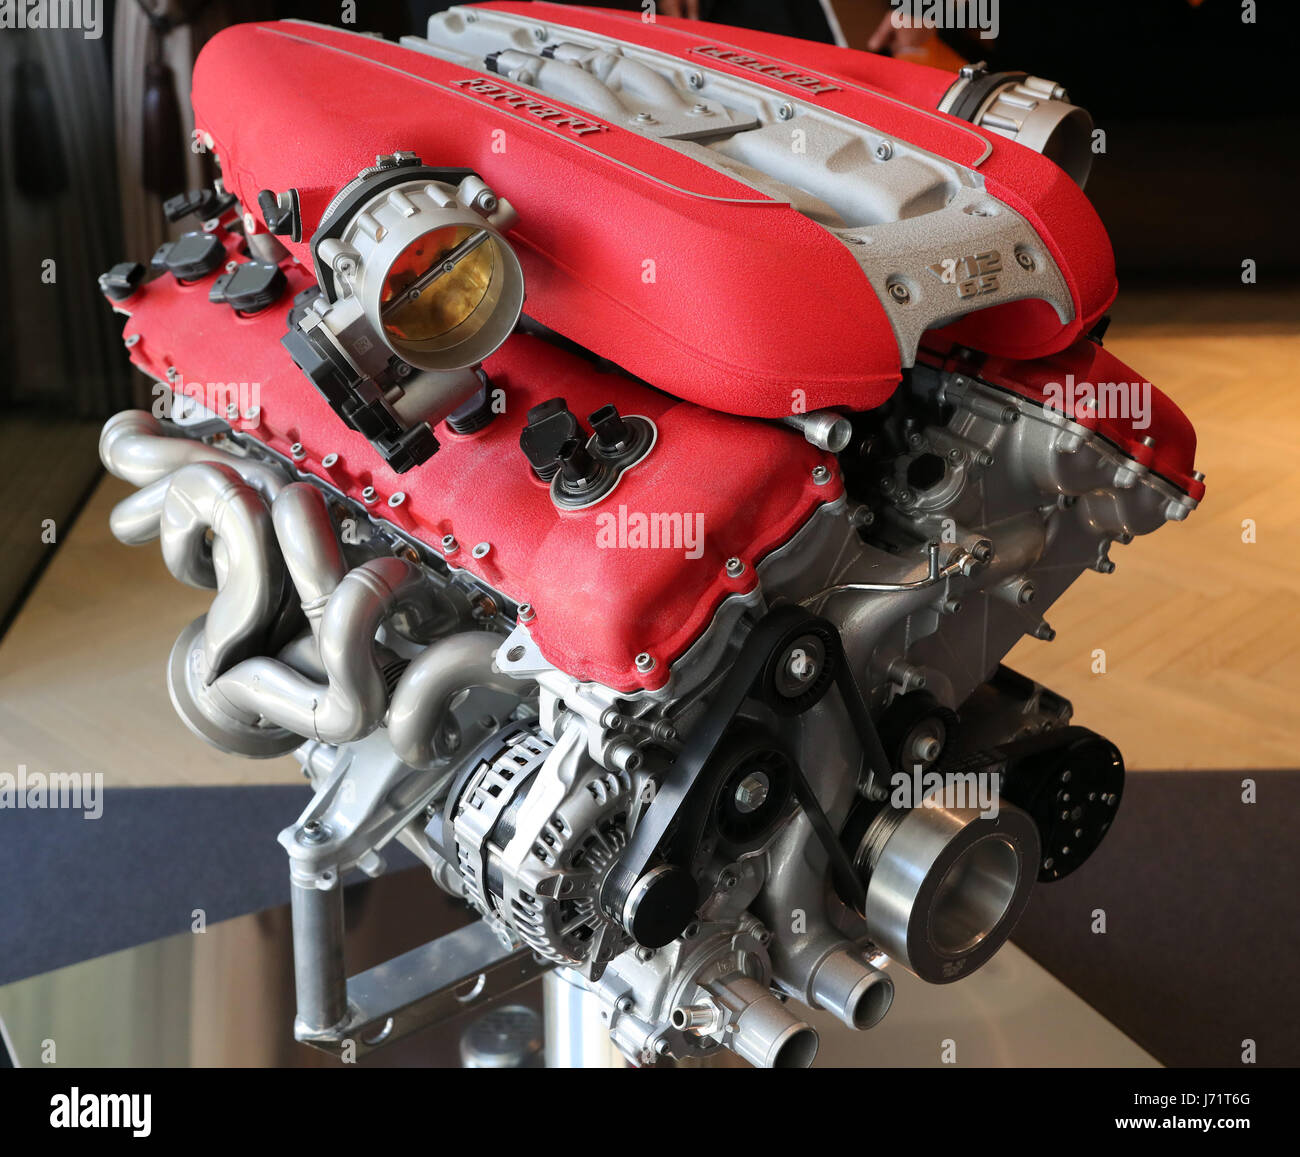 Ferrari V12 Engine High Resolution Stock Photography And Images Alamy